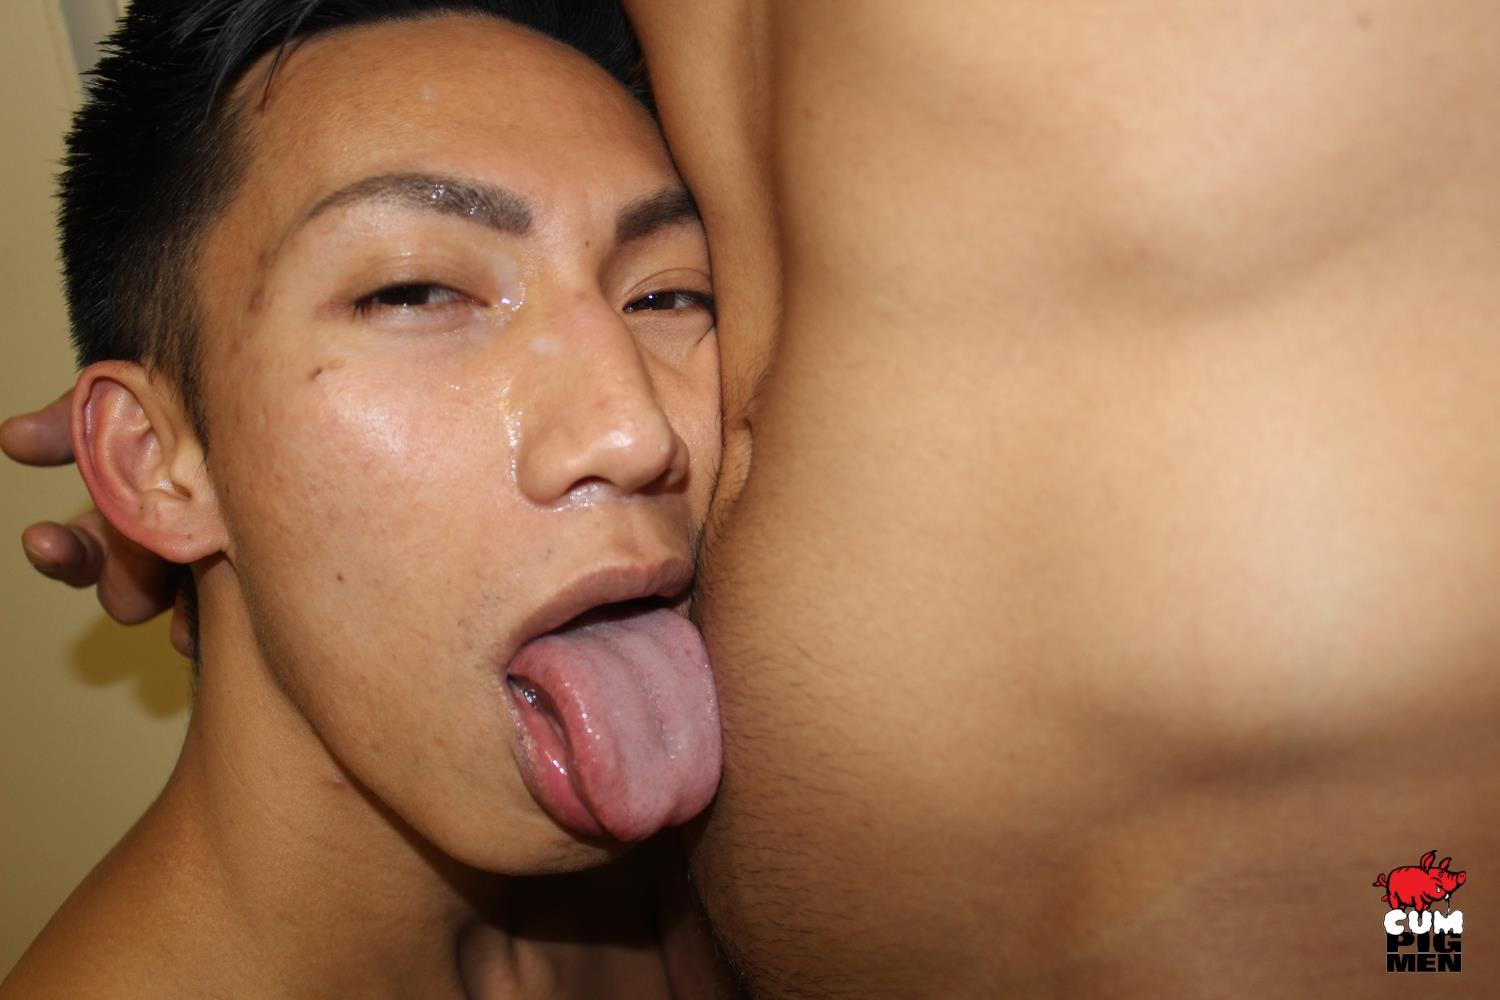 Cum-Pig-Men-David-Ace-and-Jace-Big-Dick-Asian-Sucking-Cock-Gay-Sex-Video-10 Horny Asian David Ace Sucks A Load Out Of A Big White Dick